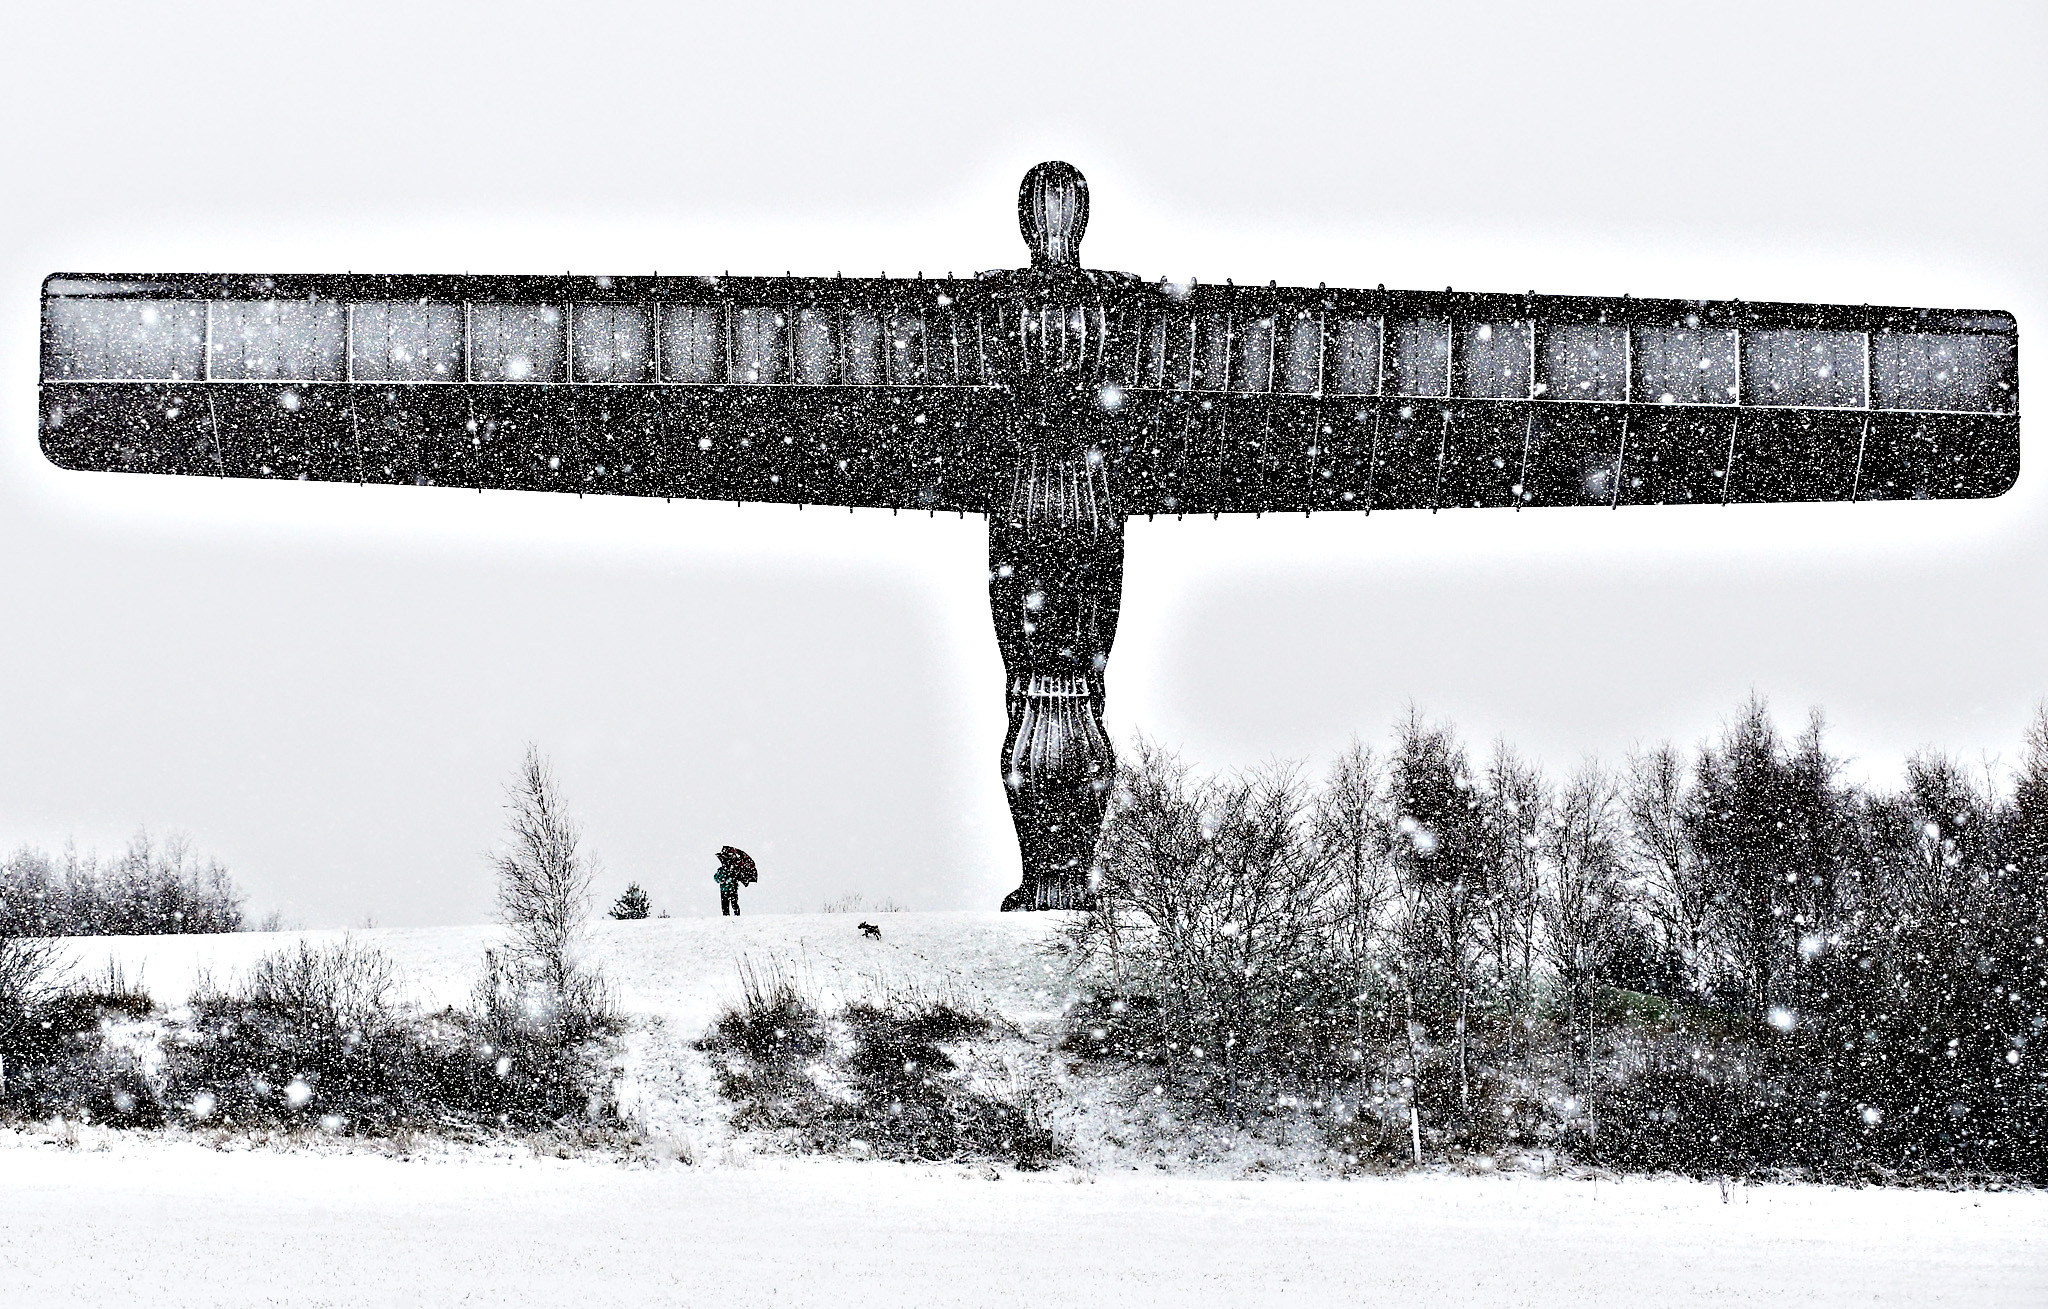 A man walks his dog through the snow under the Angel of the North in Gateshead, Tyne and Wear, as the UK braced for a new wave of bad weather after forecasters issued warnings of heavy snow in parts of England and Scotland. PRESS ASSOCIATION Photo. Picture date: Thursday January 14, 2016. The cold snap is in sharp contrast to last month, which was both the wettest and warmest December on record, when temperatures averaged 7.9C (46.2F).